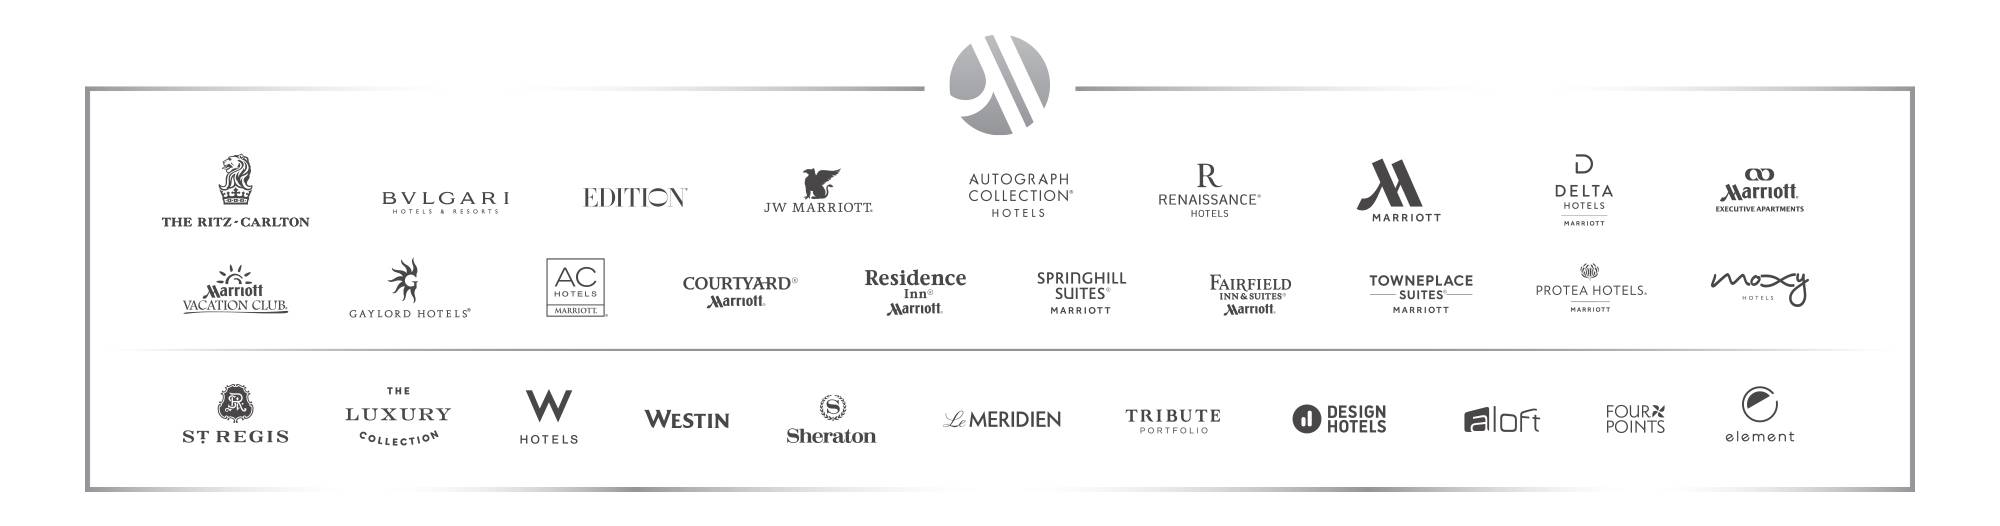 Marriott & Starwood Hotels | Prince of Travel | Miles & Points